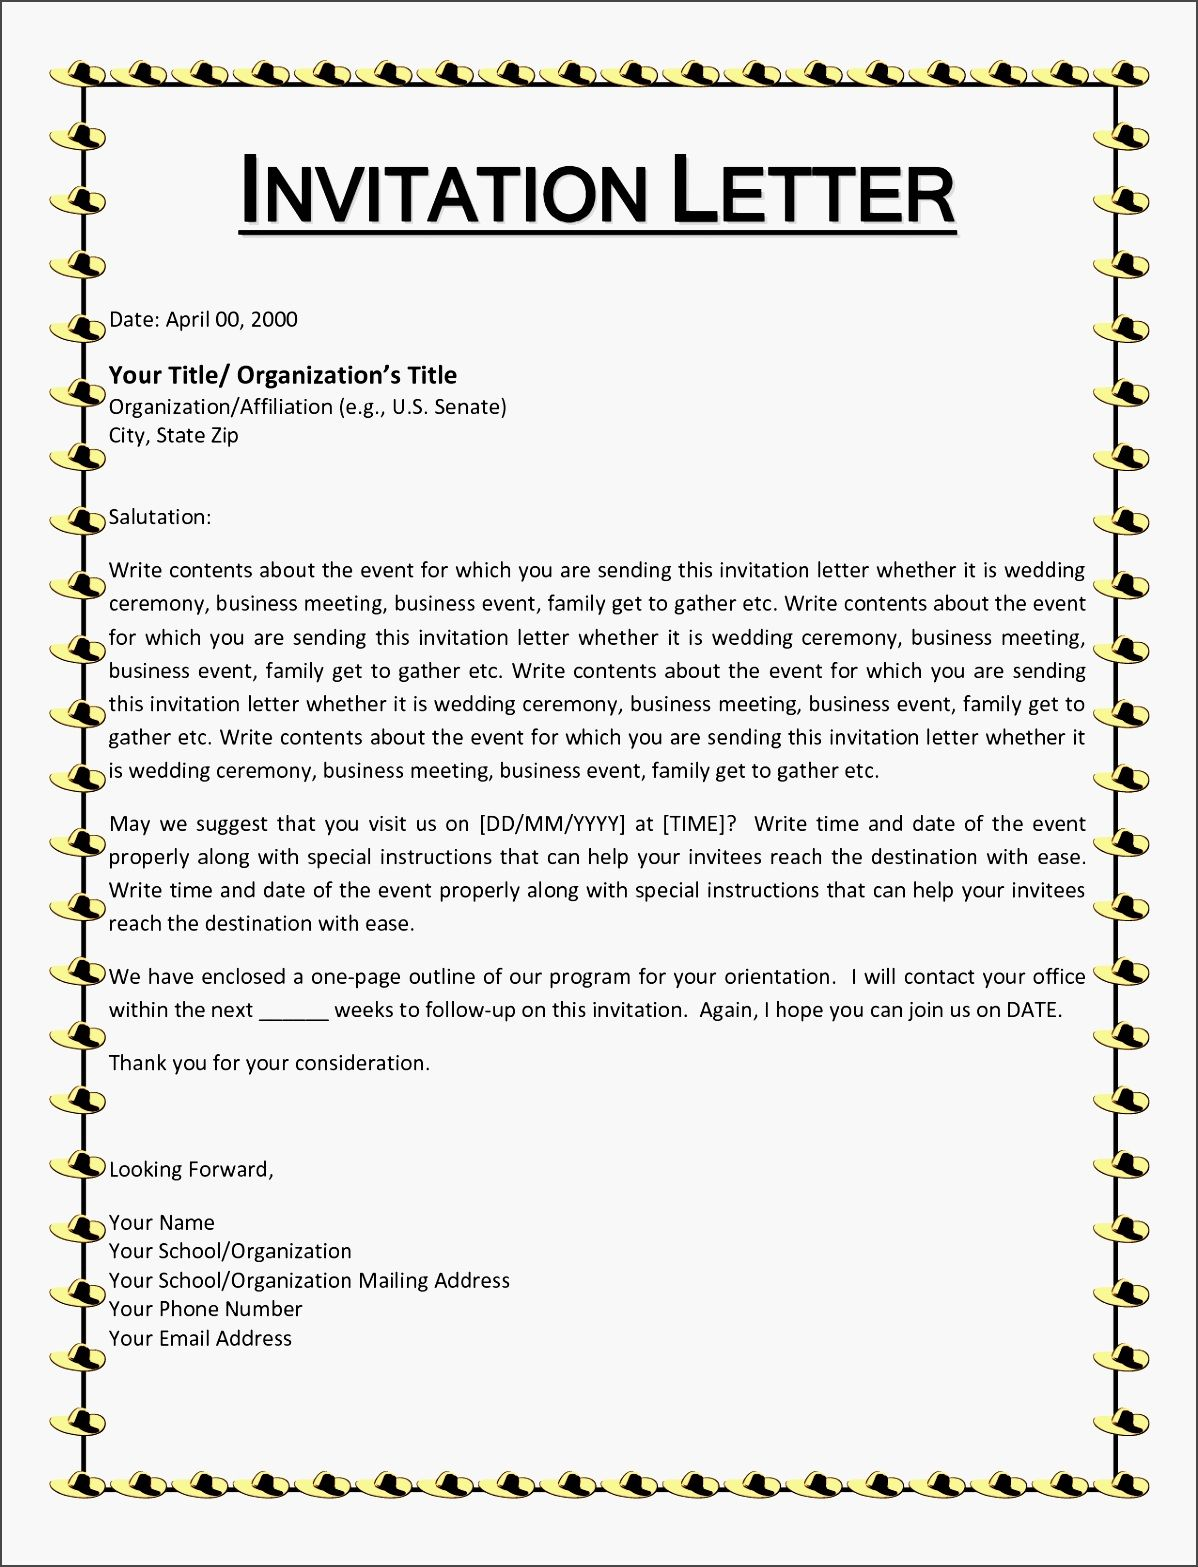 Invitation letter informal yeniscale invitation letter informal stopboris Images